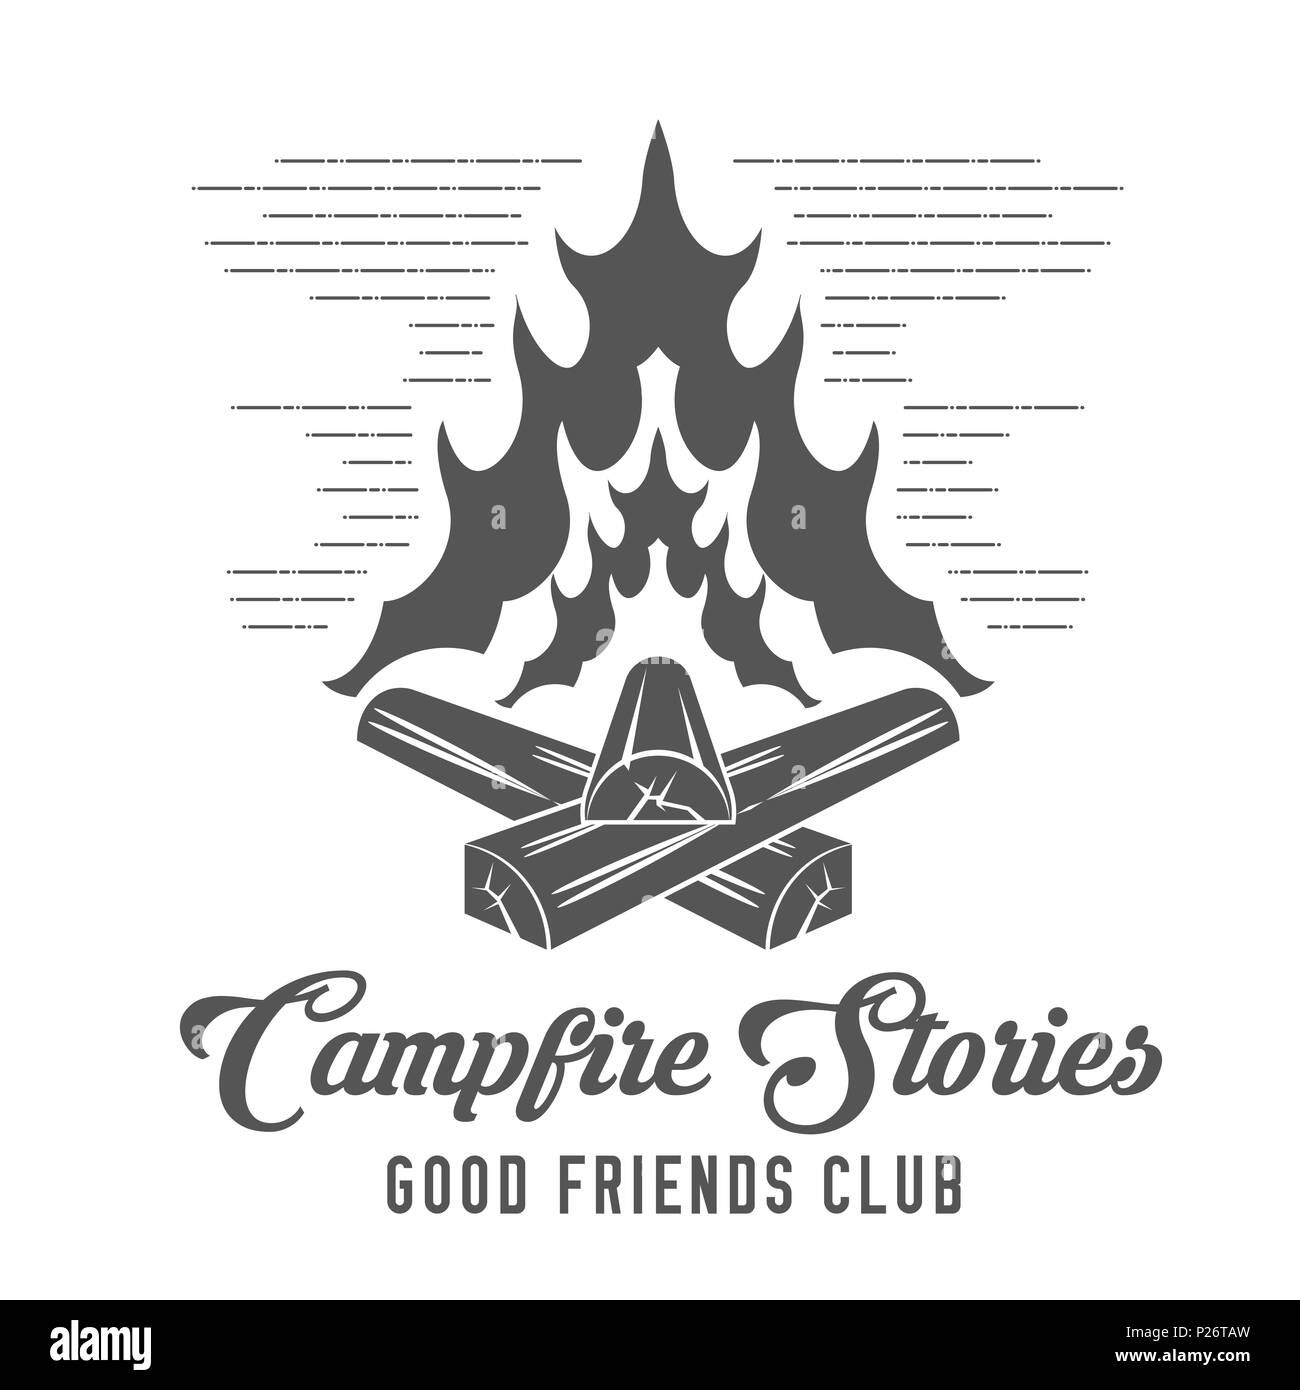 Campfire Stories - Forest Camp - Scout Club Emblem in Black and White Style. - Stock Image